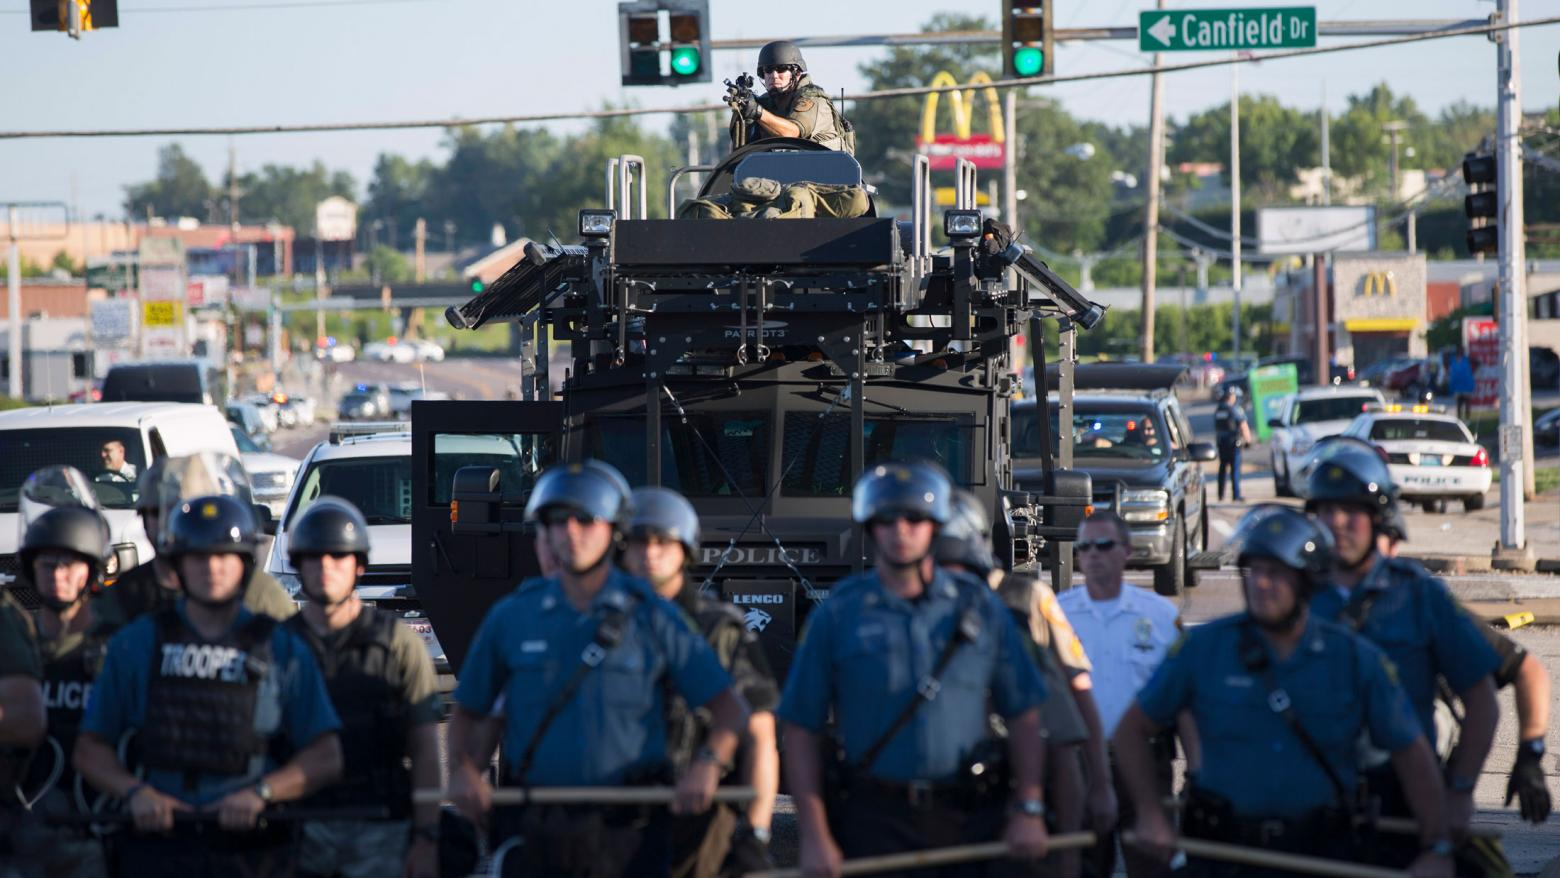 RIOT POLICE STAND GUARD DURING PROTESTS OF THE 2014 SHOOTING DEATH OF MICHAEL BROWN IN FERGUSON, MISSOURI. PHOTO: REUTERS/MARIO ANZUONI